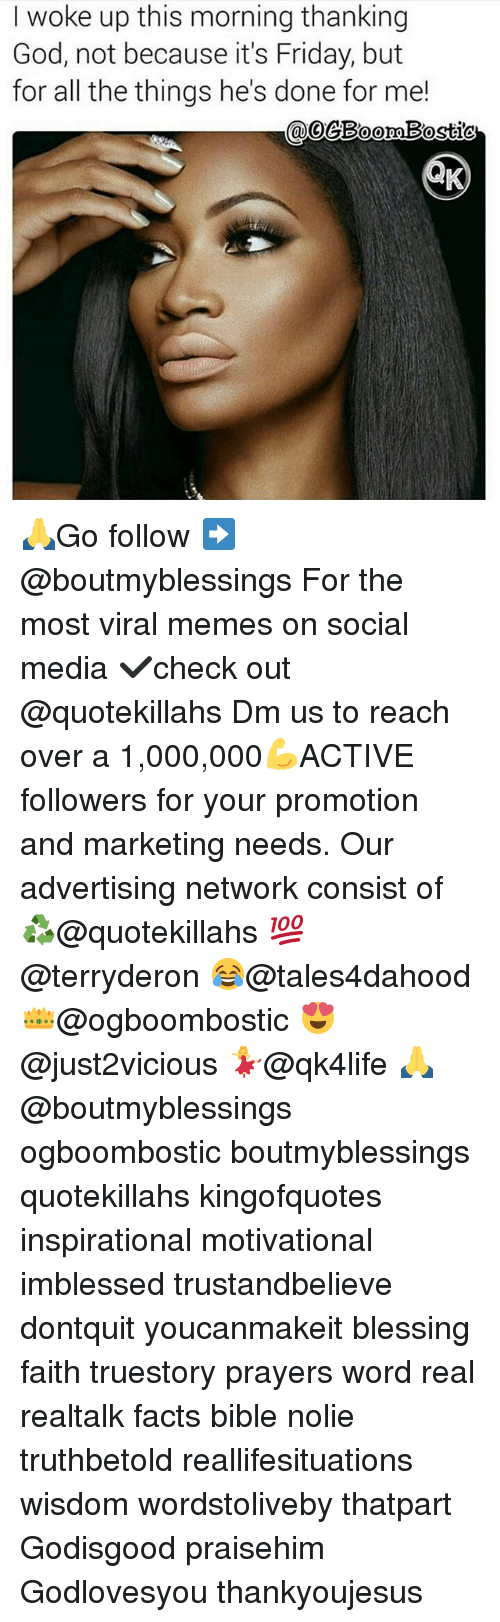 fridays: woke up this morning thanking  God, not because it's Friday, but  for all the things he's done for me!  Bostic  COO 🙏Go follow ➡@boutmyblessings For the most viral memes on social media ✔check out @quotekillahs Dm us to reach over a 1,000,000💪ACTIVE followers for your promotion and marketing needs. Our advertising network consist of ♻@quotekillahs 💯@terryderon 😂@tales4dahood 👑@ogboombostic 😍@just2vicious 💃@qk4life 🙏@boutmyblessings ogboombostic boutmyblessings quotekillahs kingofquotes inspirational motivational imblessed trustandbelieve dontquit youcanmakeit blessing faith truestory prayers word real realtalk facts bible nolie truthbetold reallifesituations wisdom wordstoliveby thatpart Godisgood praisehim Godlovesyou thankyoujesus